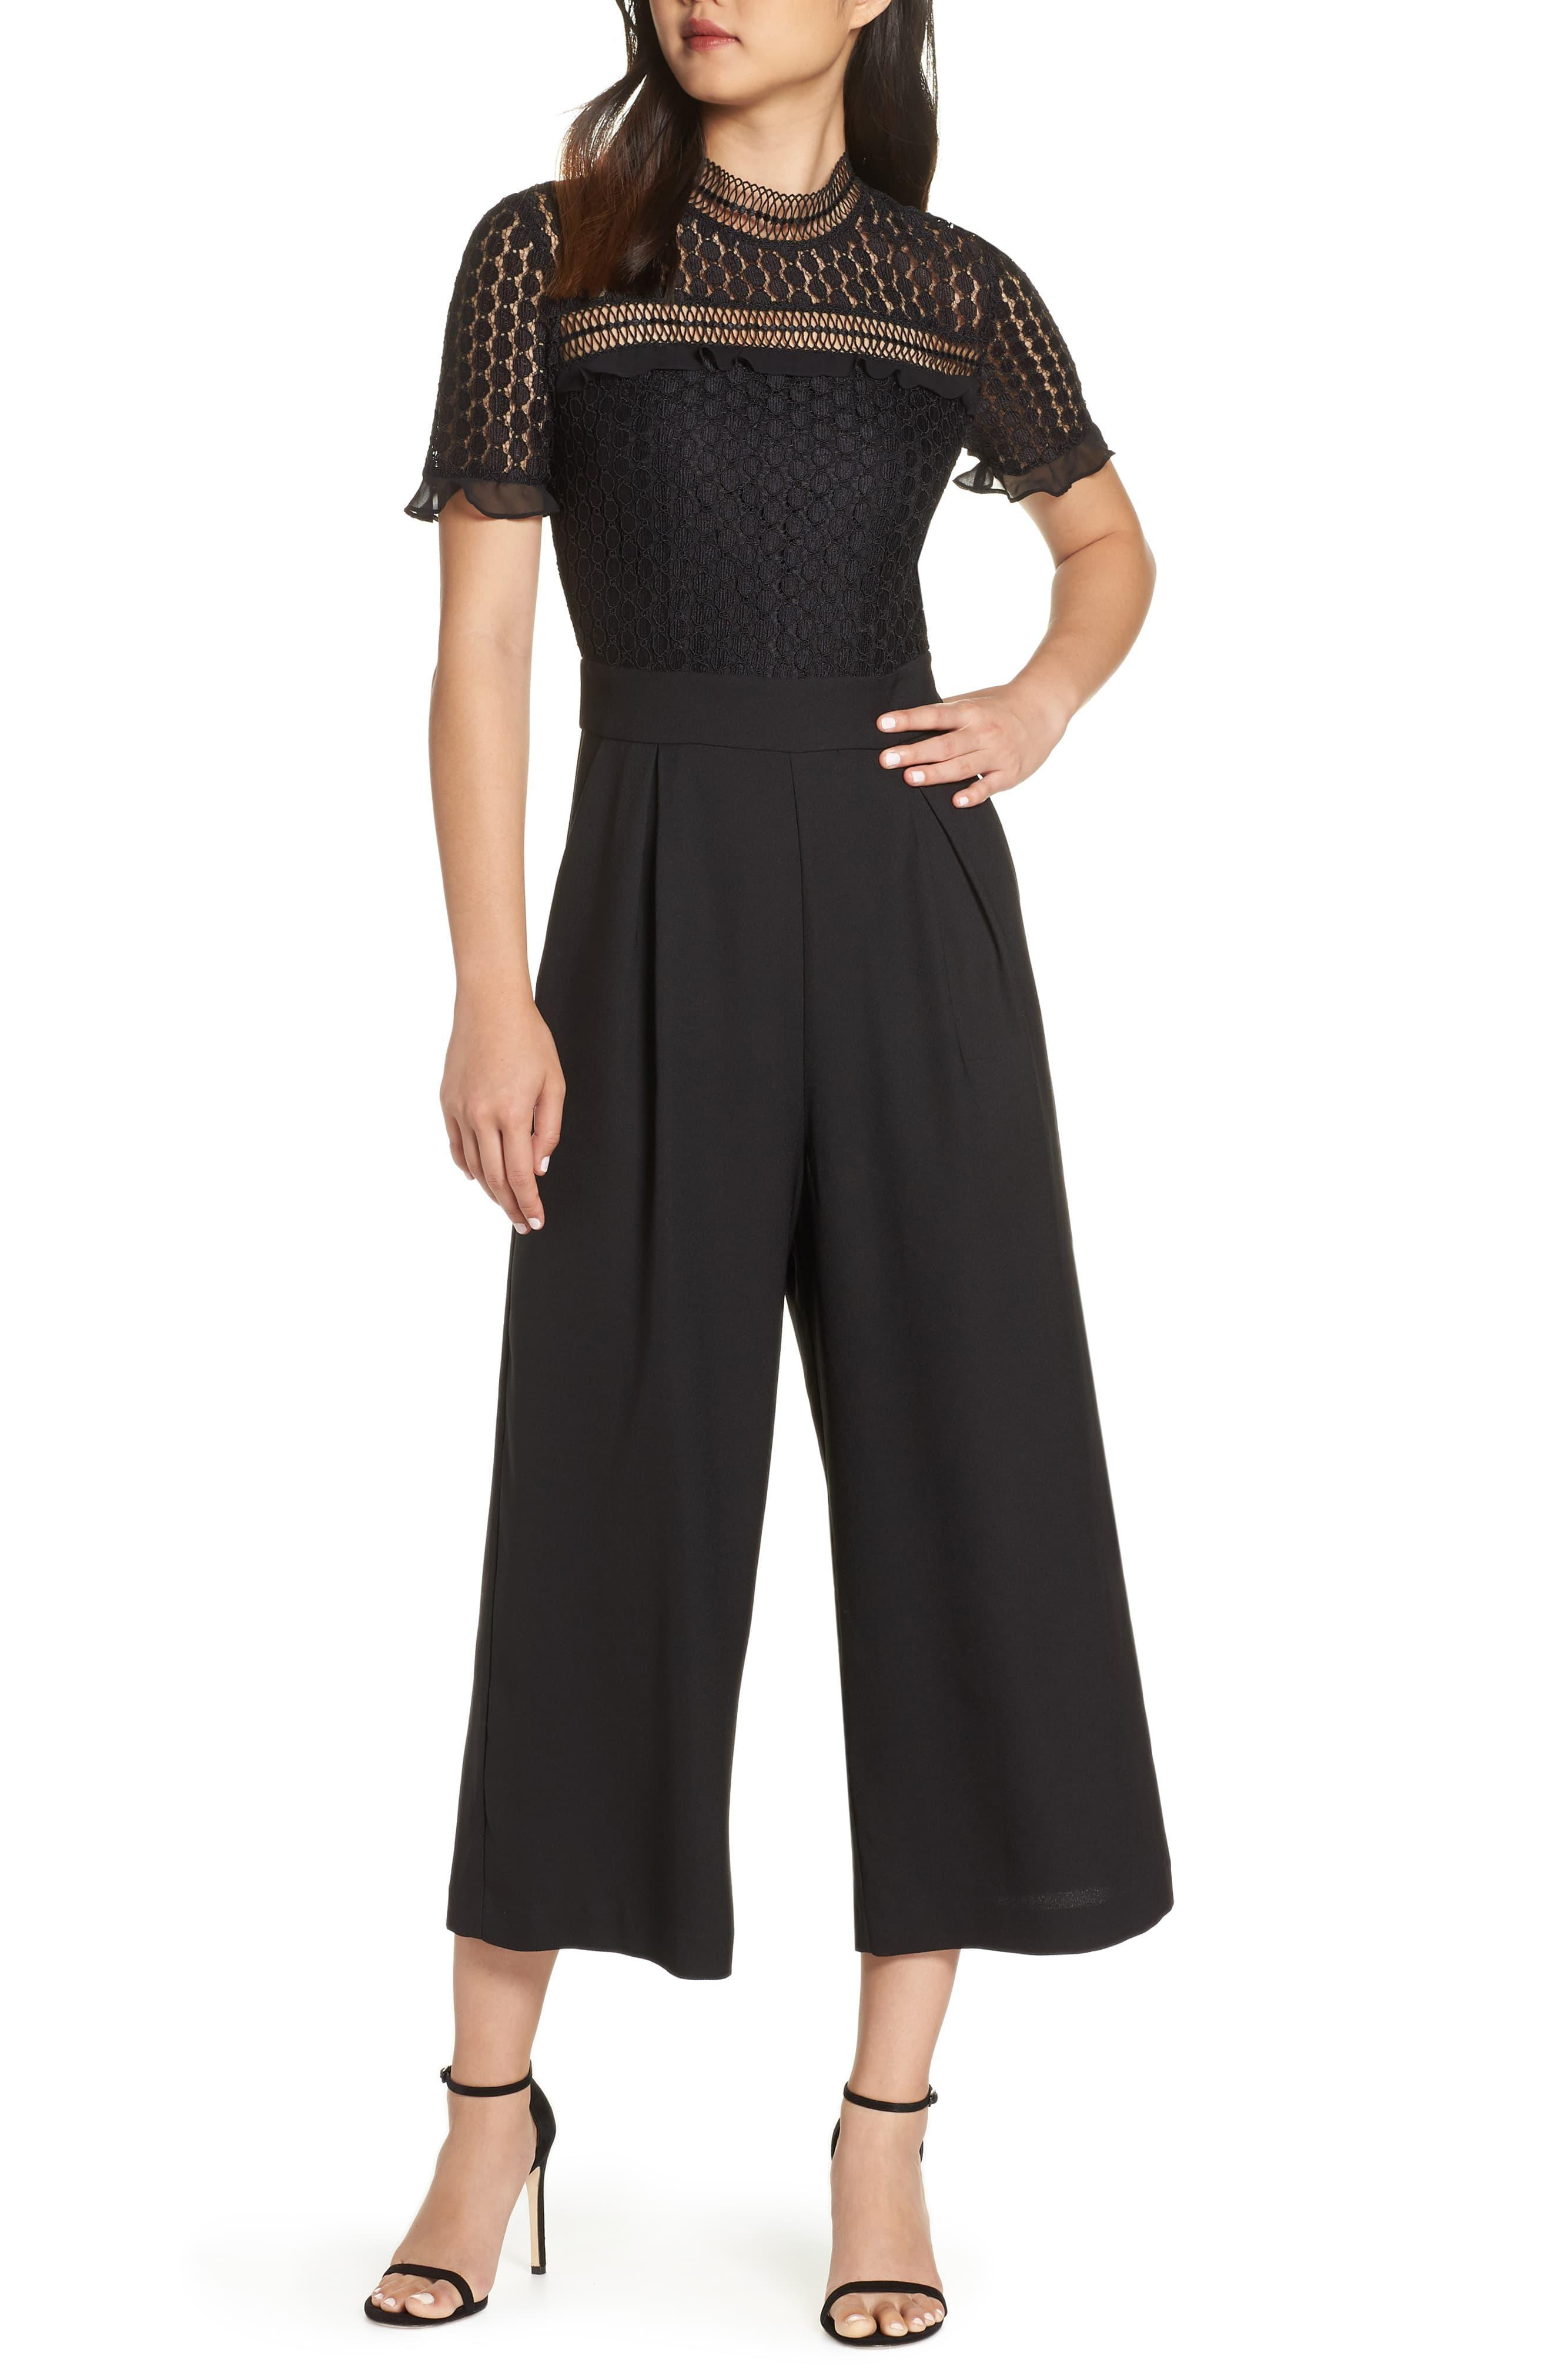 870ddc9aecfb Chelsea28 Lace Cropped Jumpsuit in Black - Lyst